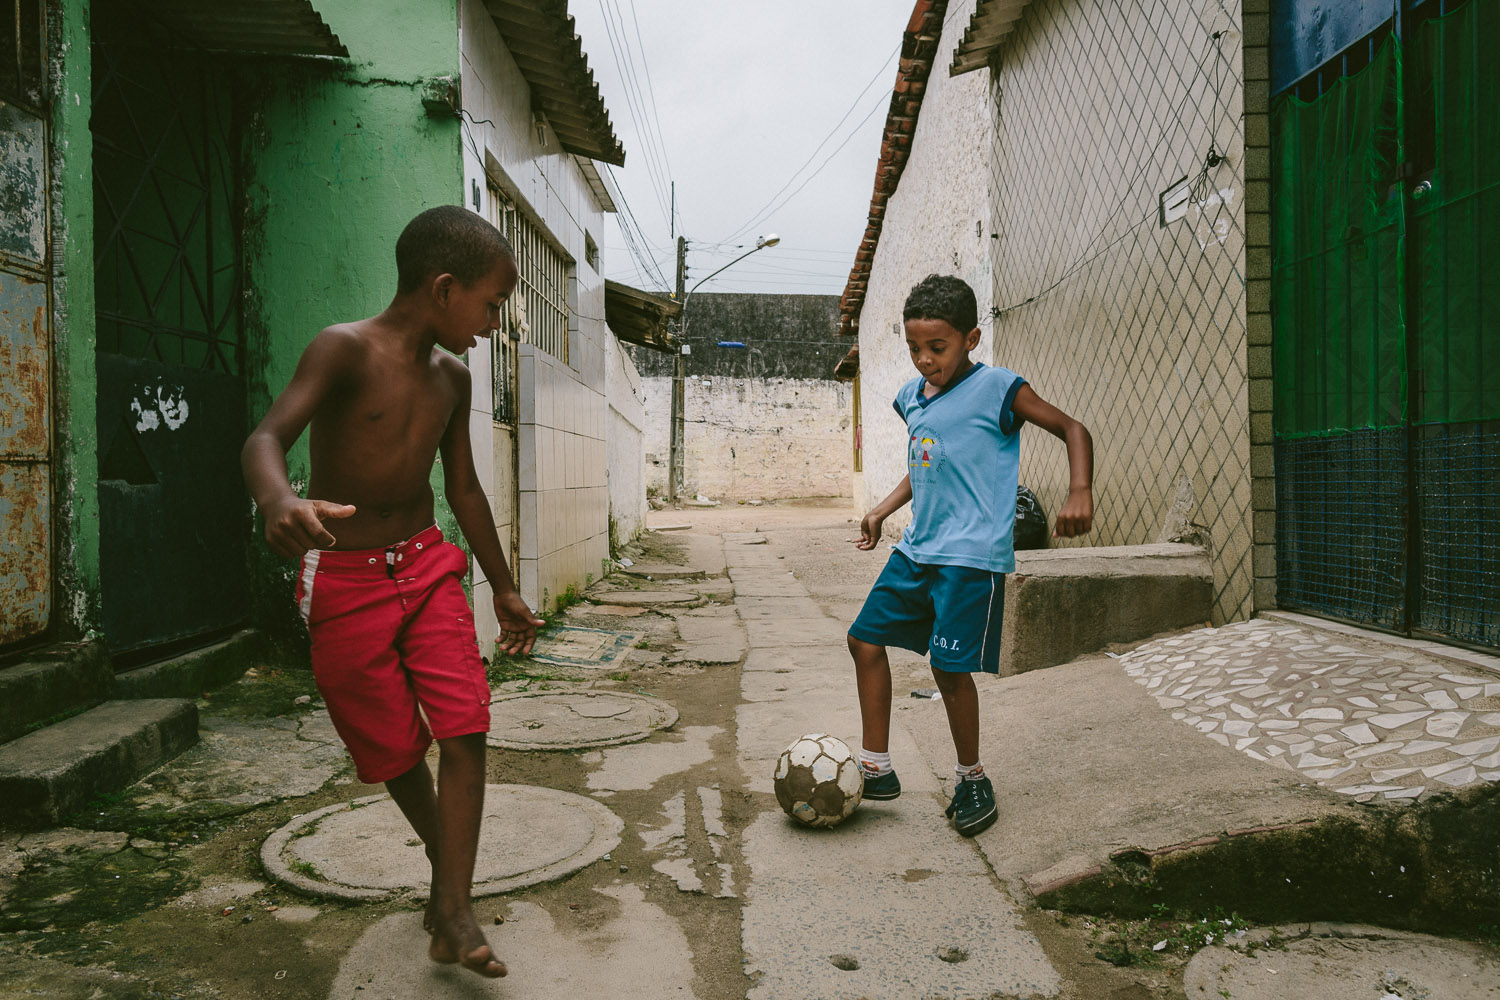 """On the way home, Emidio's friend spots him and asks if he wants to pass the ball around while he walks home. Soccer is the most popular sport in Brazil and home to the 2014 World Cup. After his time at the Compassion Center, Emidio walks to his """"aunt's"""" house (family friend---no relation) to be taken care of before heading to school since his mother works until 10pm each night."""